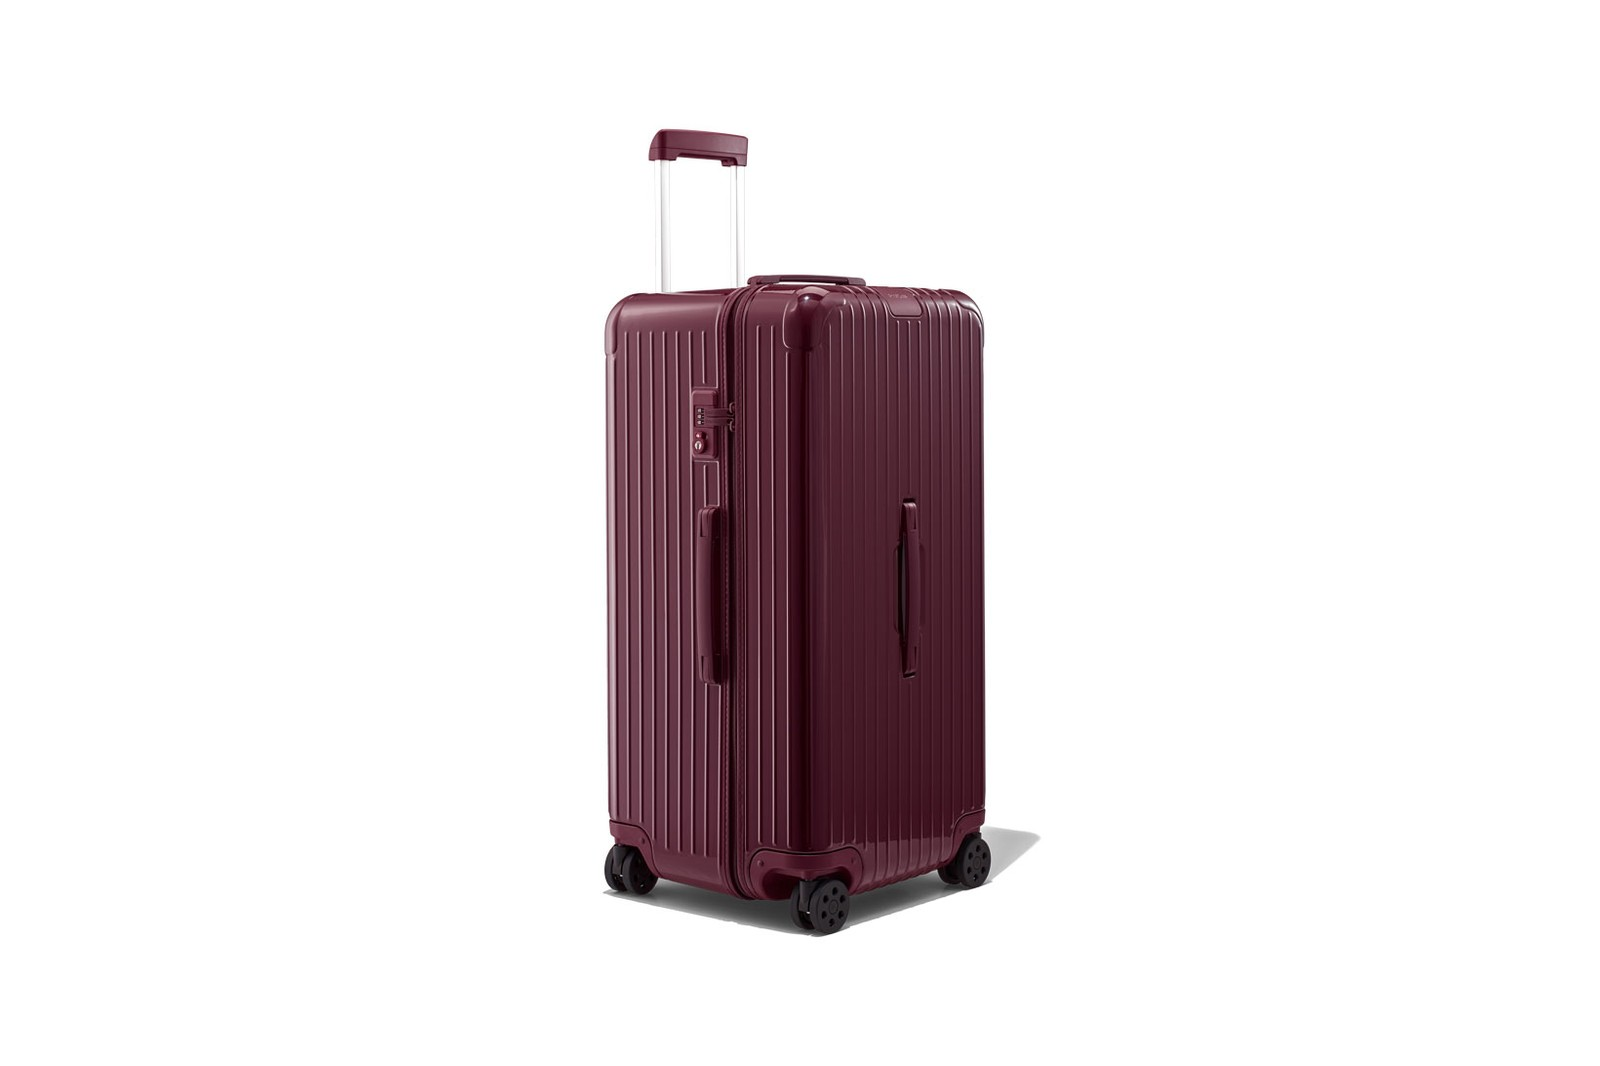 RIMOWA Essential Cabin Check-In Glacier Suitcase Luggage